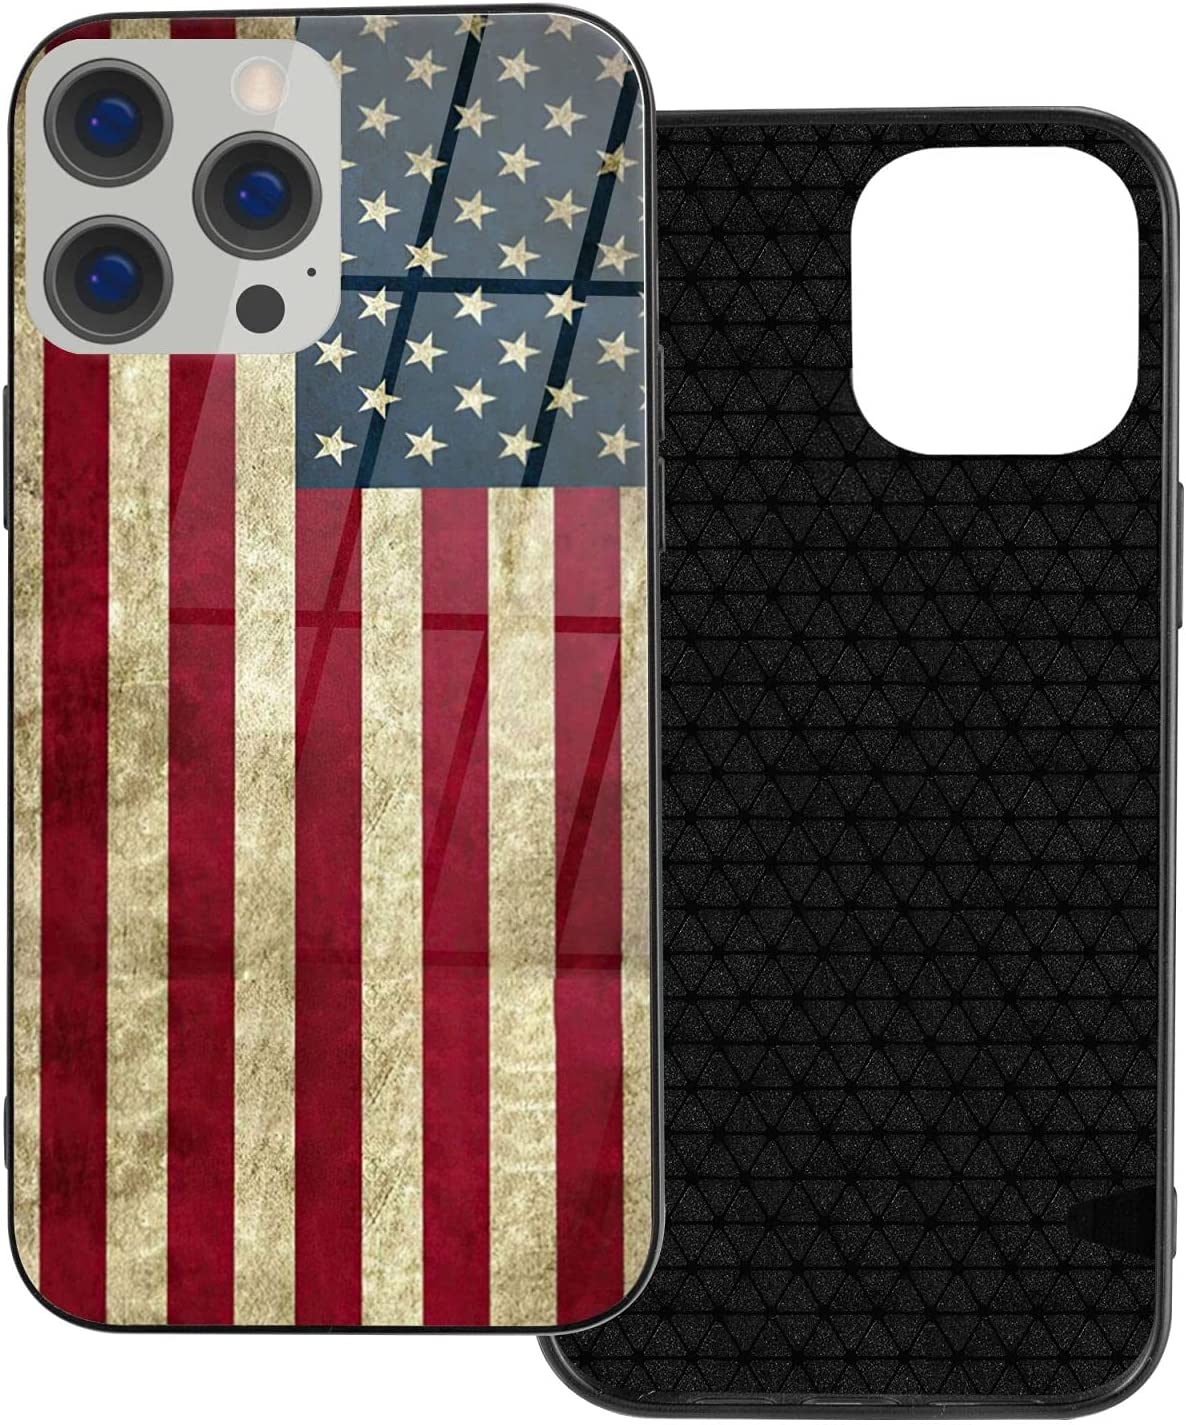 iPhone 12/12 Pro Case,USA American Flag iPhone Case for Men Women Boys Girls Teens,Tempered Glass Back Cover Anti Scratch Reinforced Corners Soft TPU Bumper Design Shockproof Case for iPhone 6.1 inch